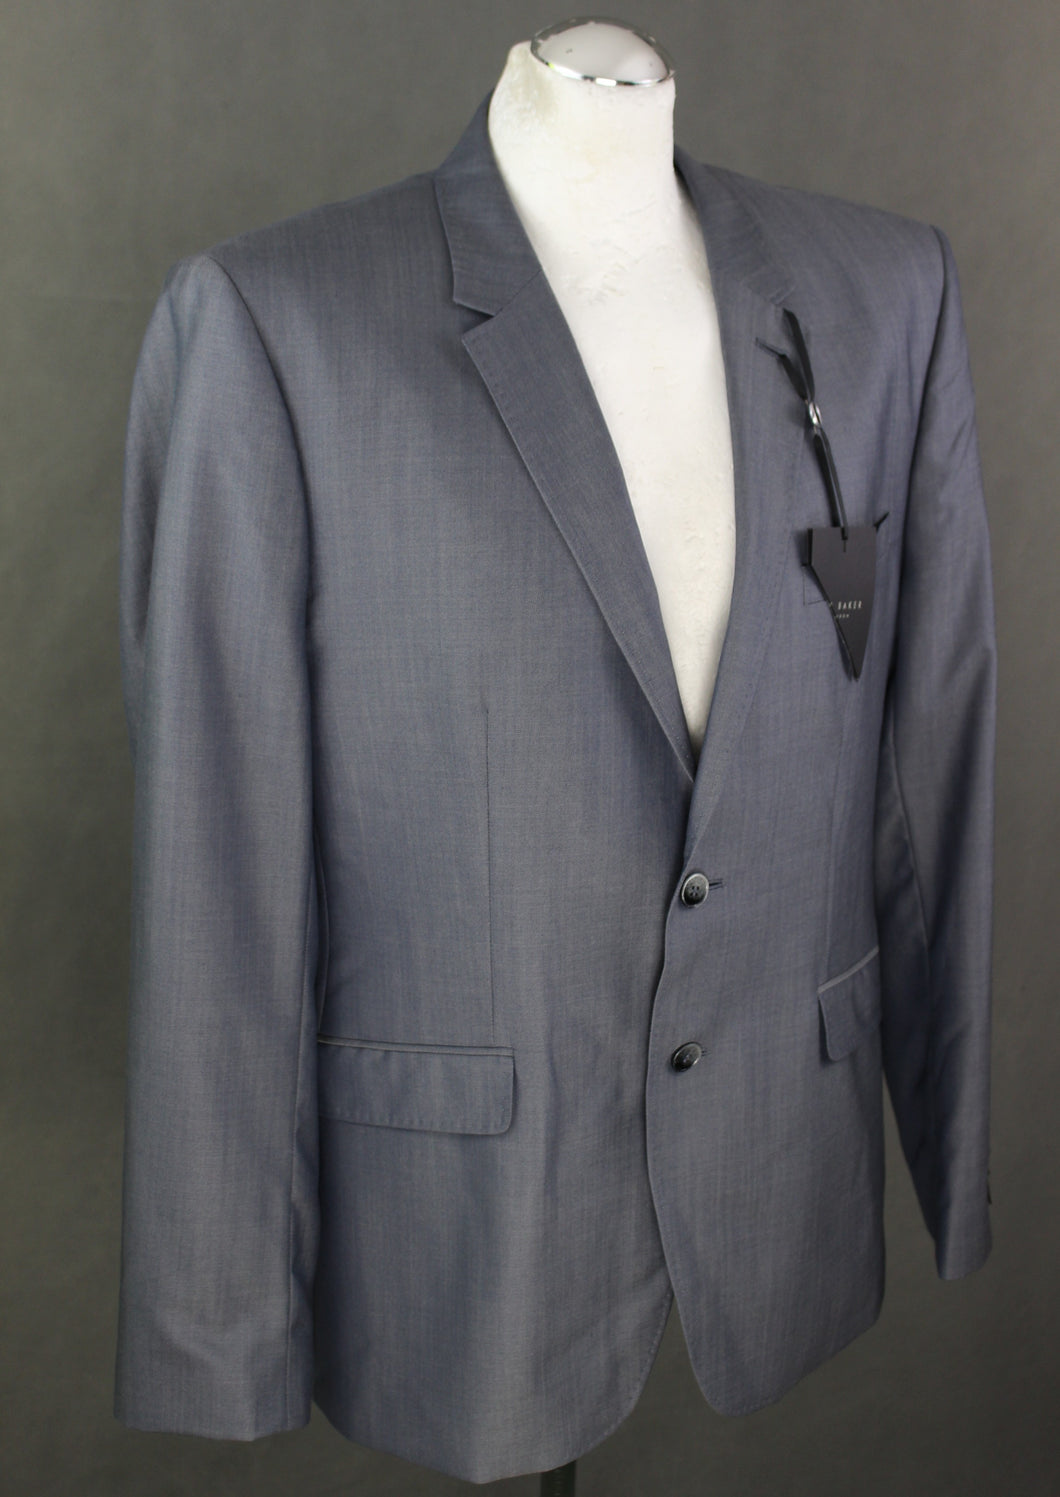 New TED BAKER PASHION Grey Wool & Silk Blend JACKET / BLAZER Size 44R 44